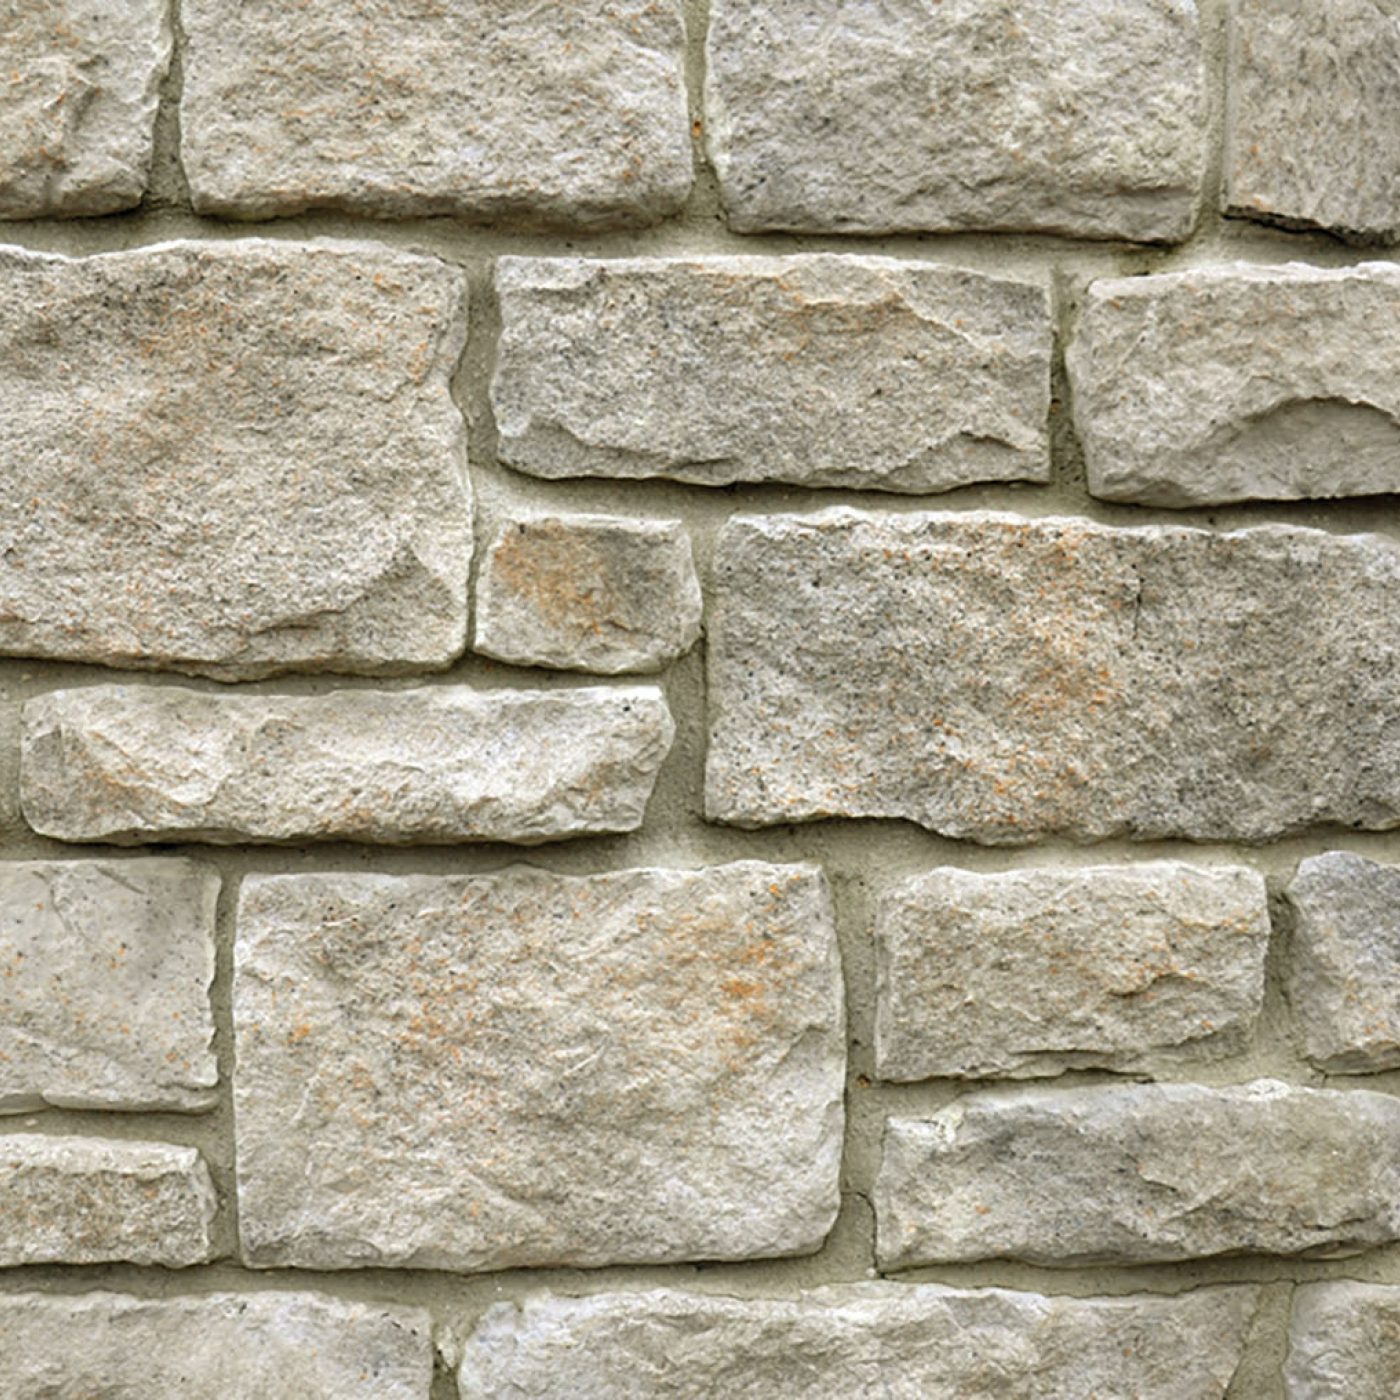 Carolina Cut Stone Stone Veneer from Environmental StoneWorks